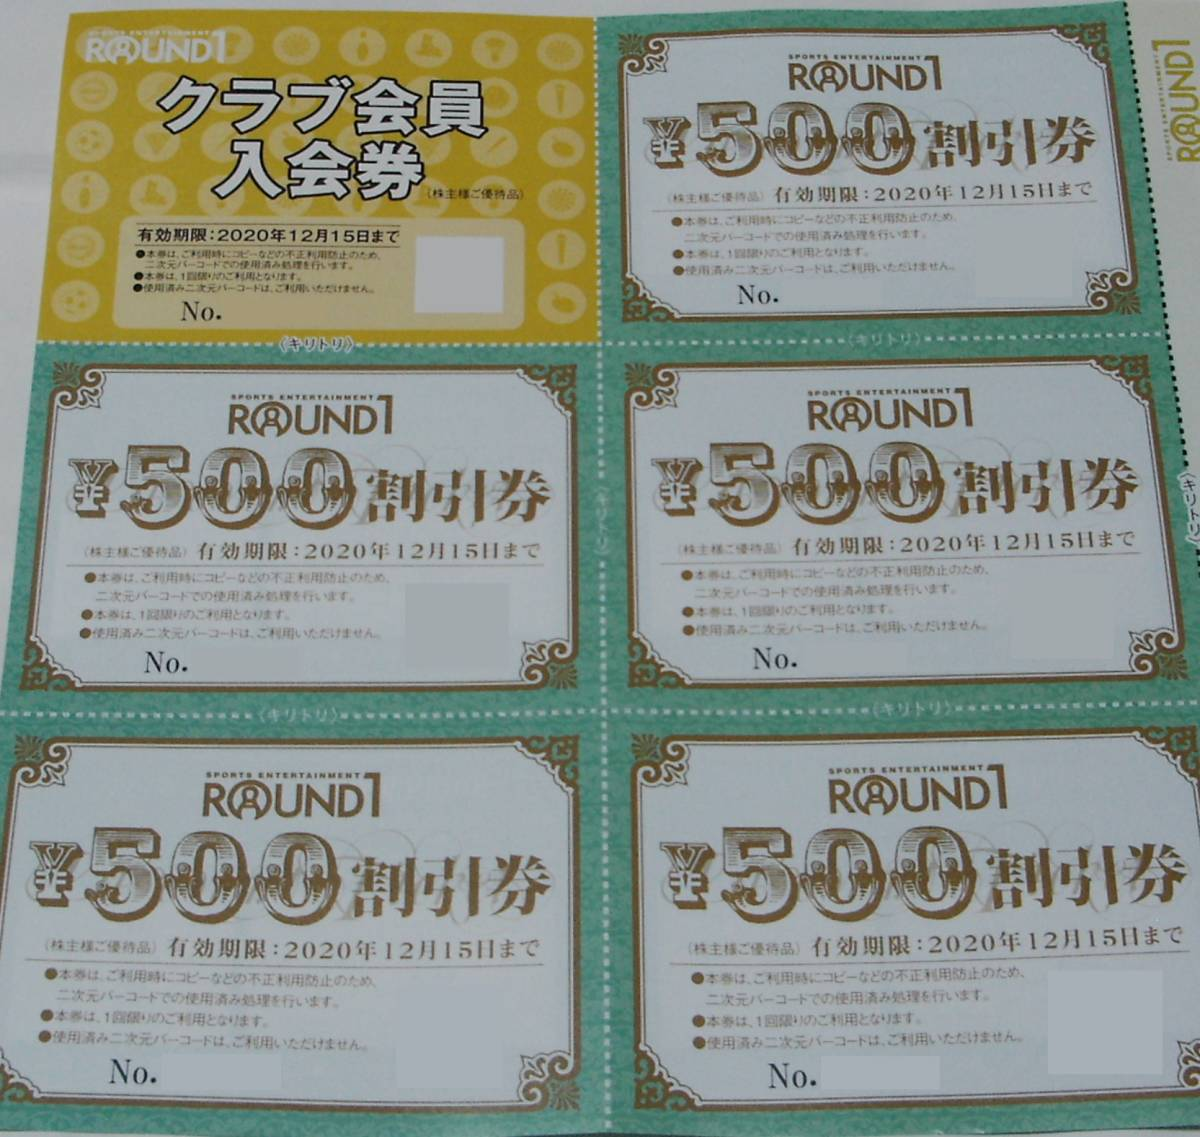 ☆ round one stockholder complimentary ticket 500 yen × 5 Club card × 1 ☆ Free Shipping